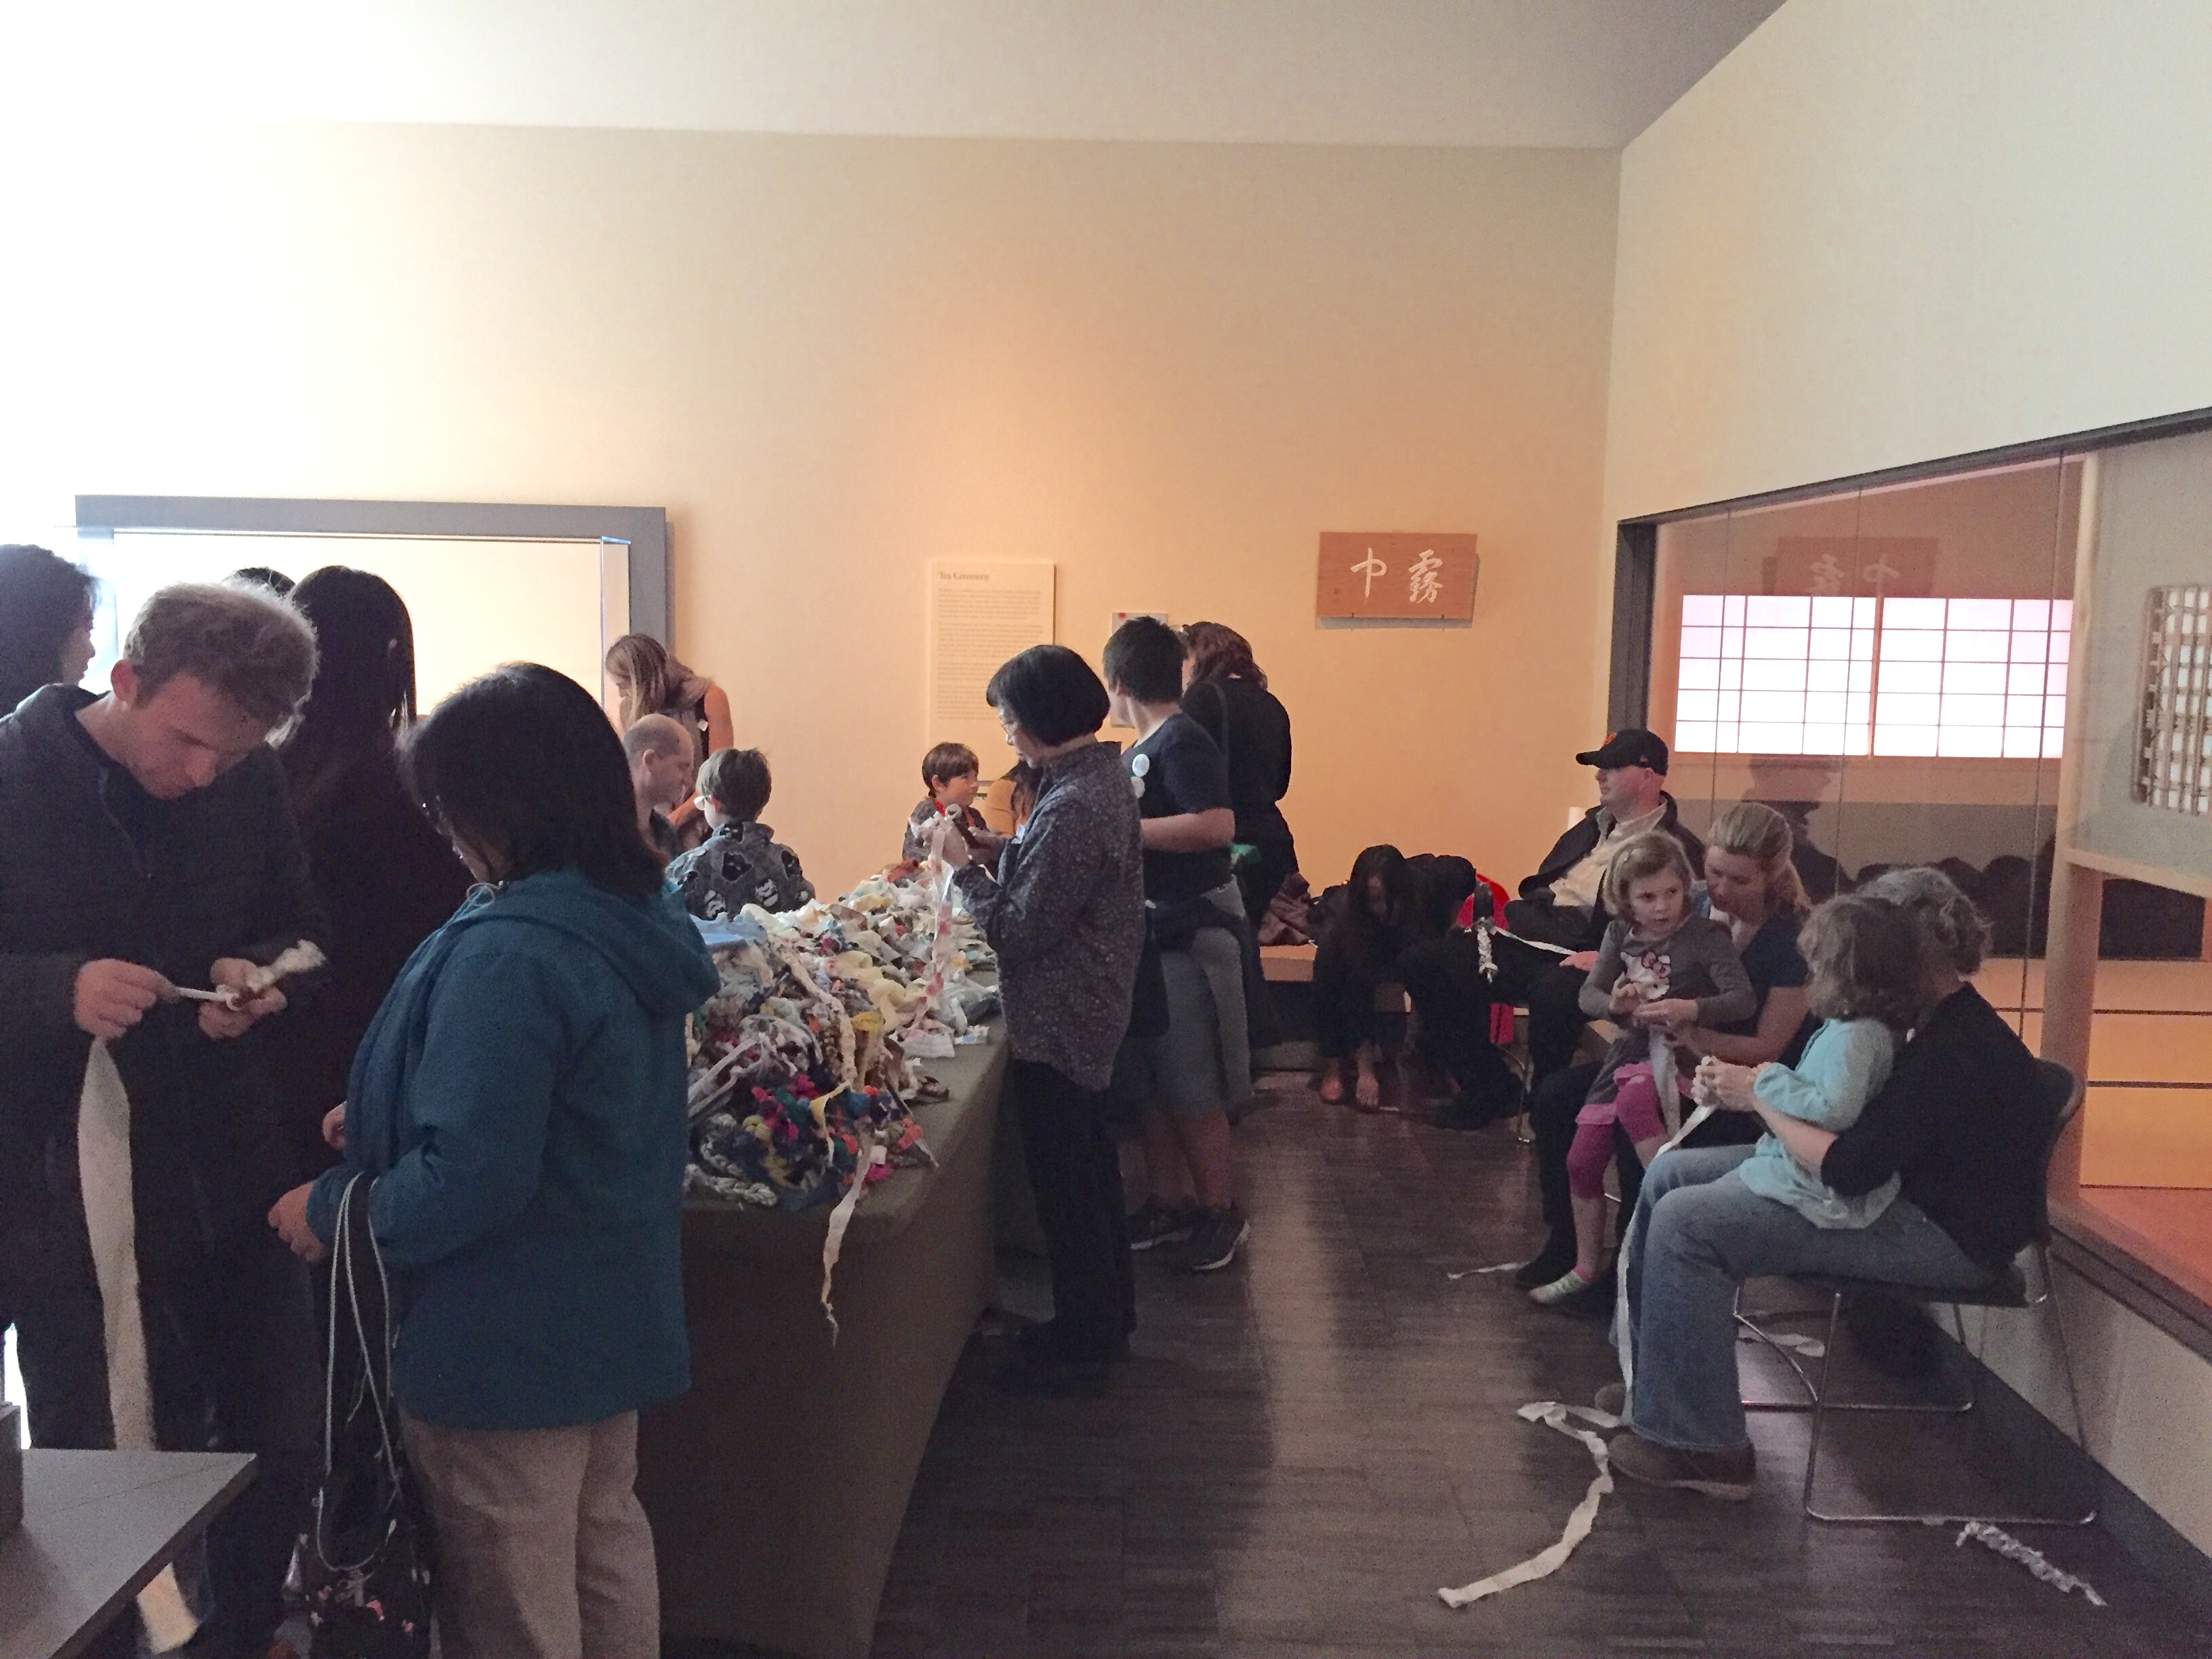 Ramekon O'Arwisters, Crochet Jam, Asian Art Museum (AAM) 50th Anniversary Celebration, San Francisco, 2016